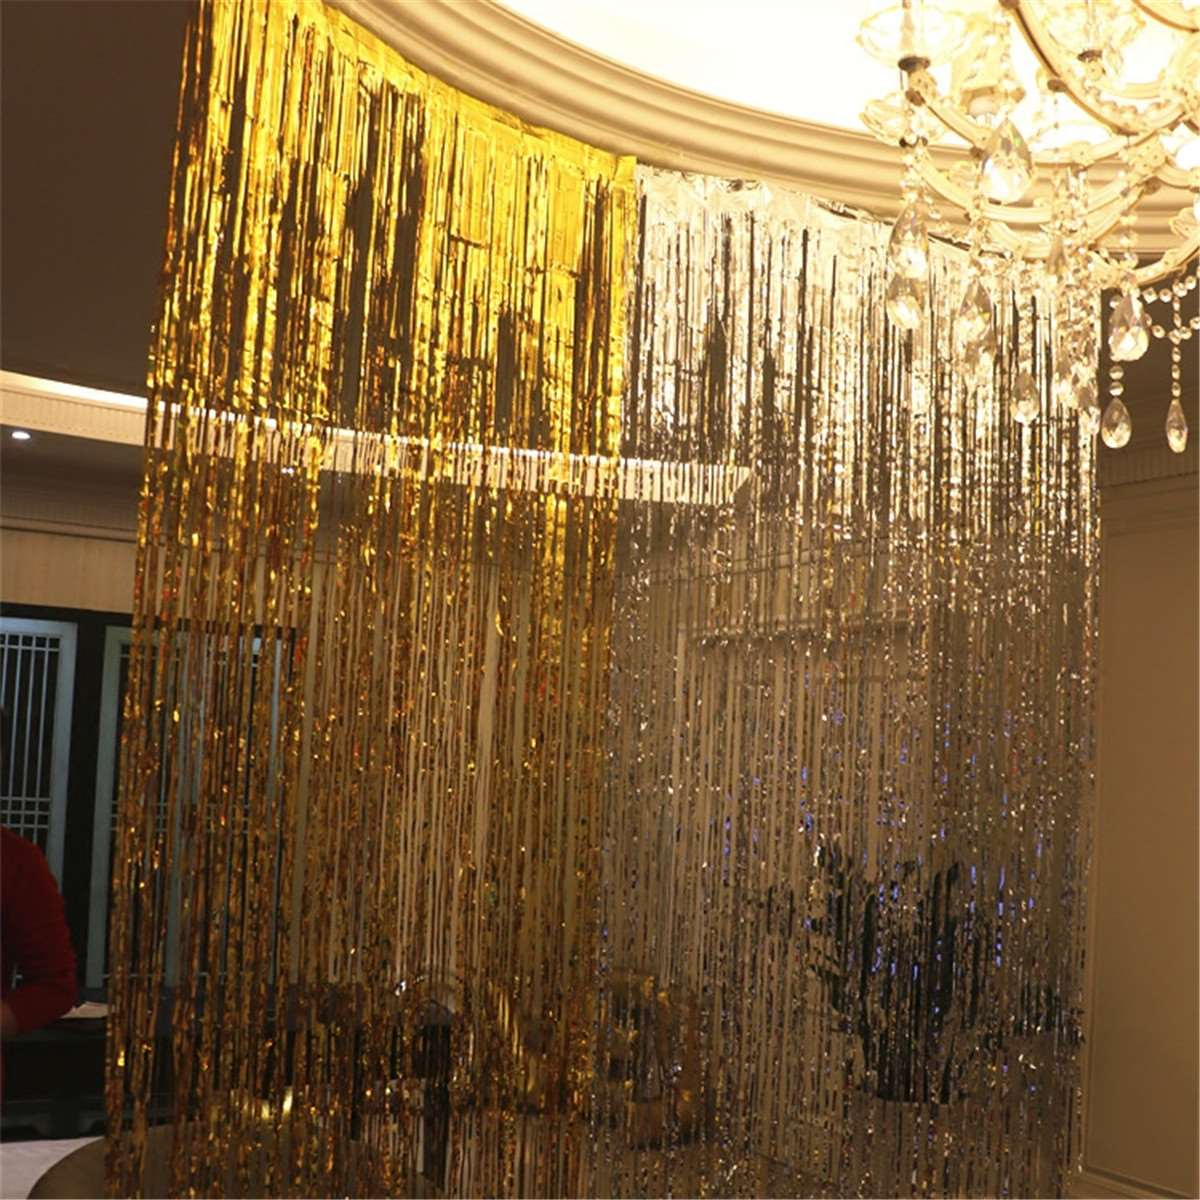 Glitter Plastic Metallic Foil Tinsel Curtain Fringe Events Party Supplies Wedding Birthday Favor Design Decorative Crafts Aliexpress